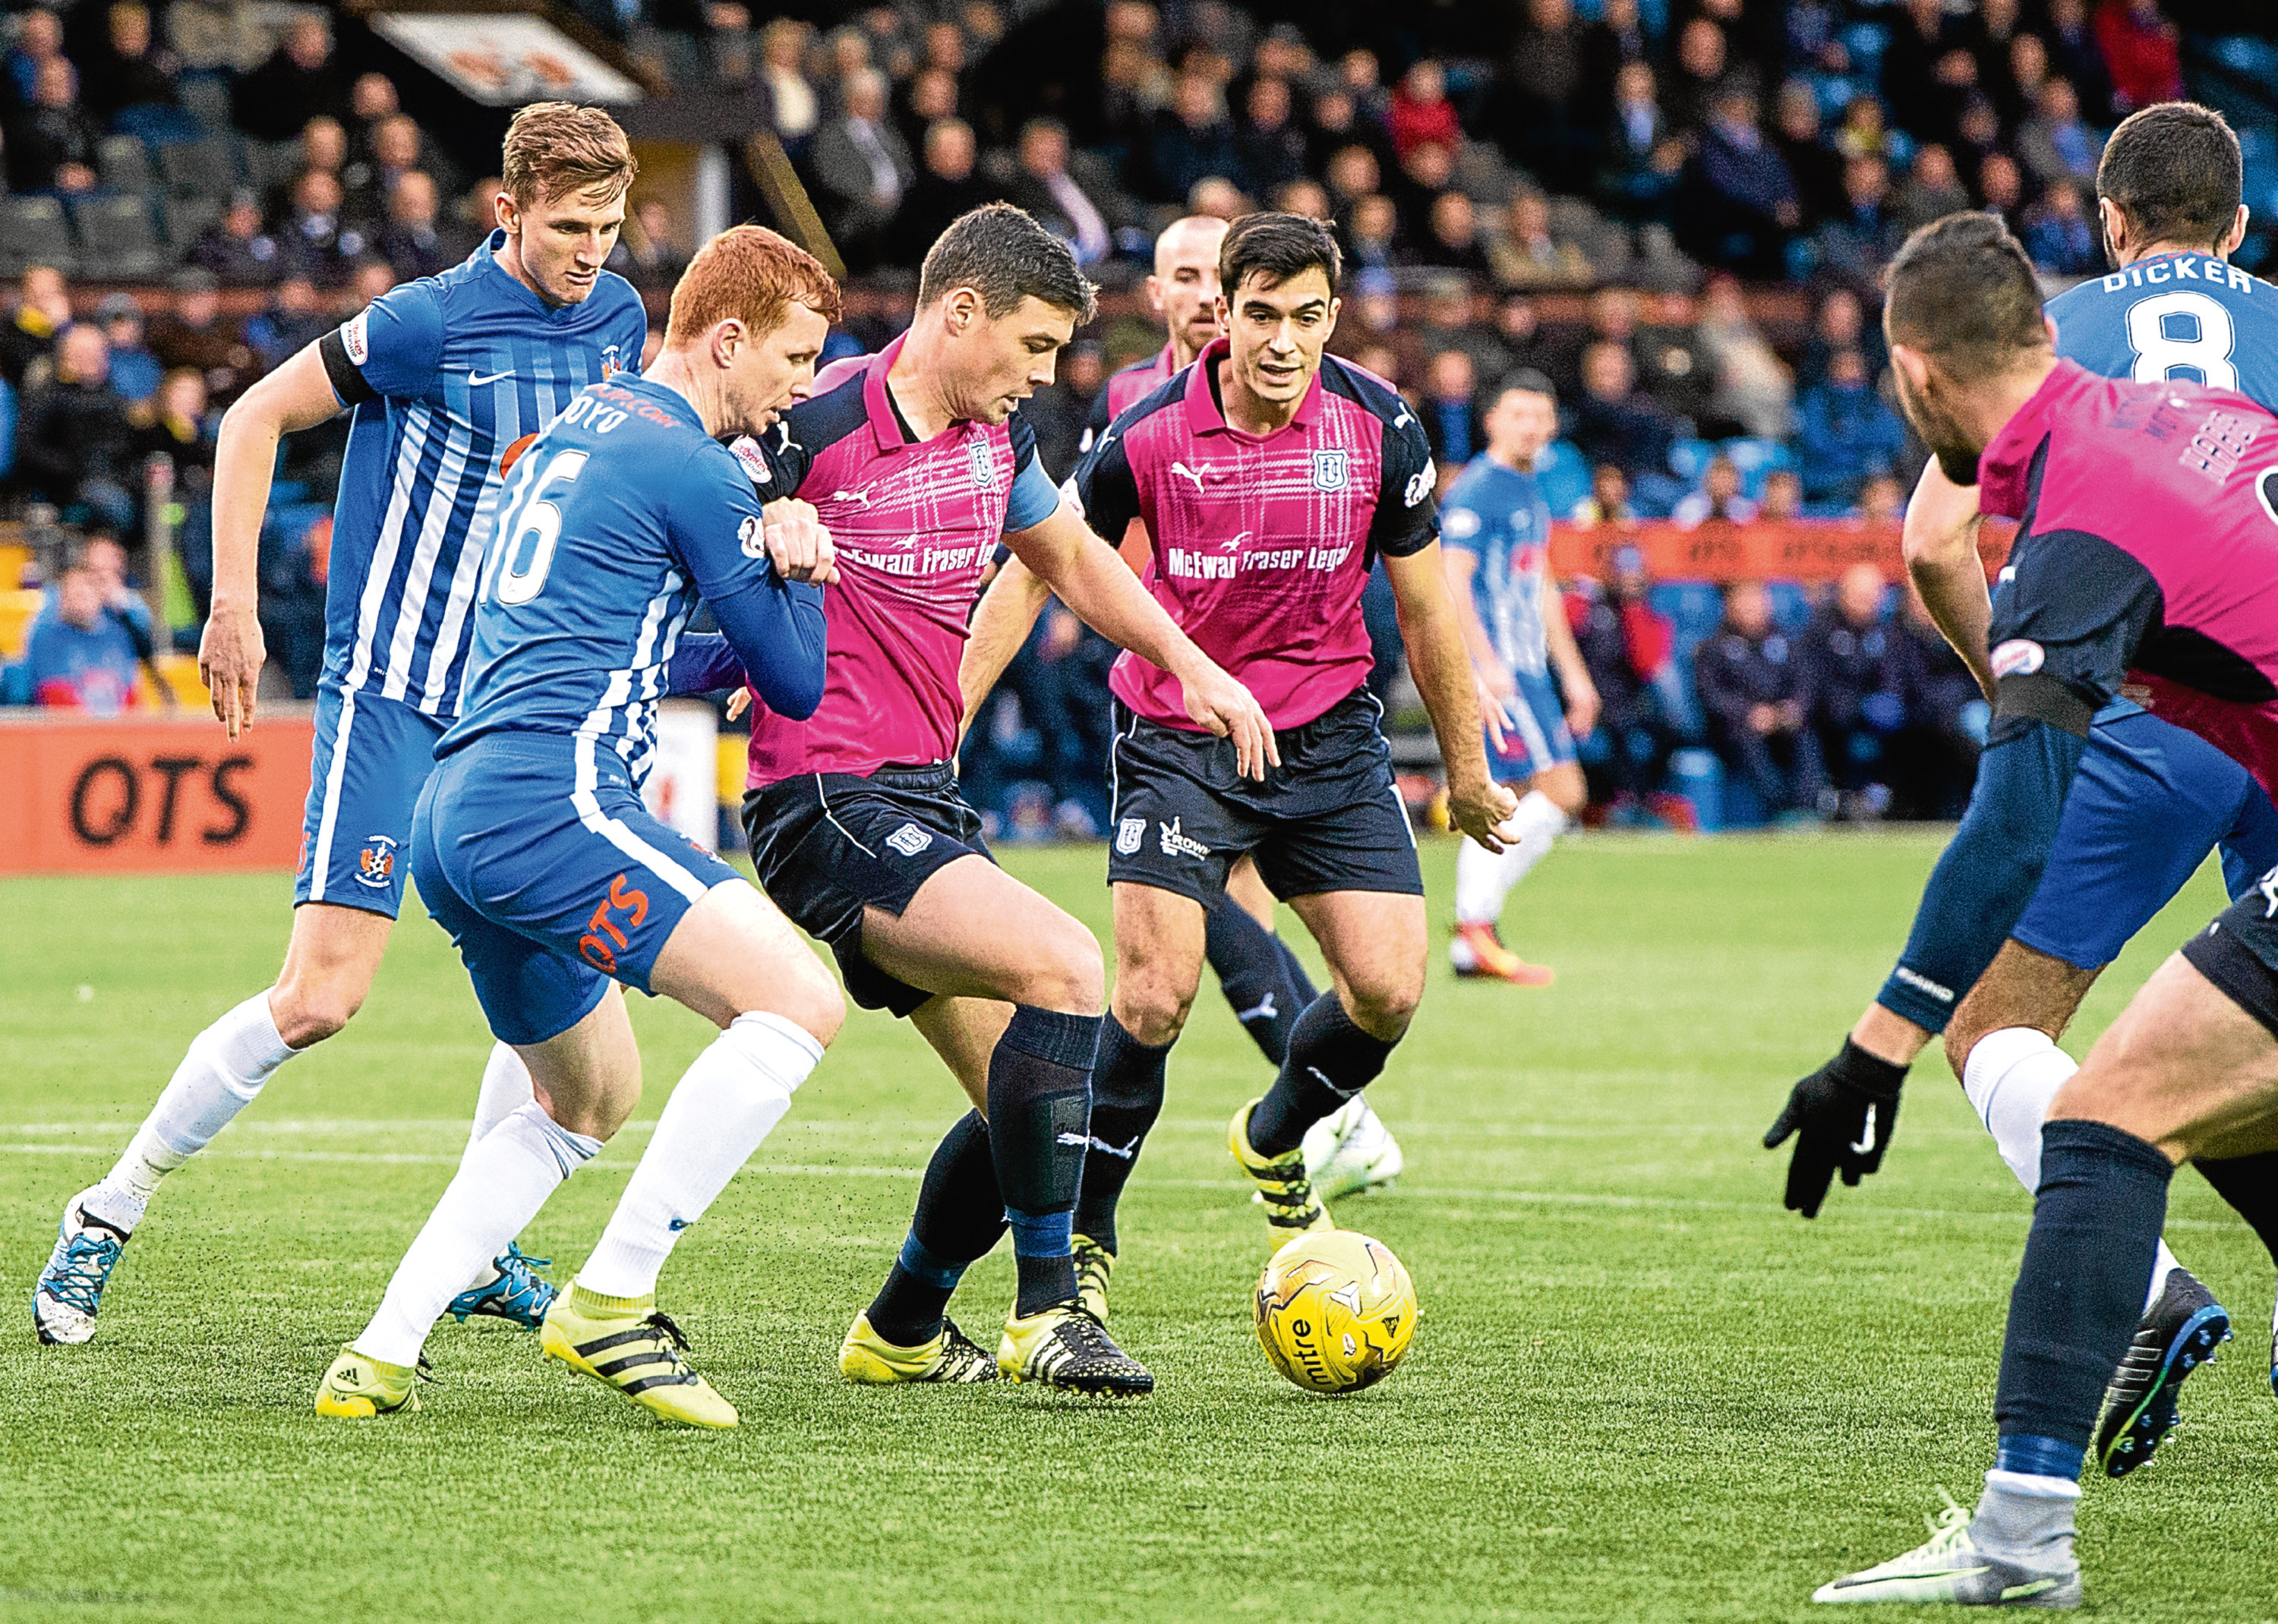 Darren O'Dea (centre) holds off Scott Boyd as the Dark Blues slip to a 2-0 defeat at Kilmarnock — something the Dundee defender is determined to correct this weekend with another home win.